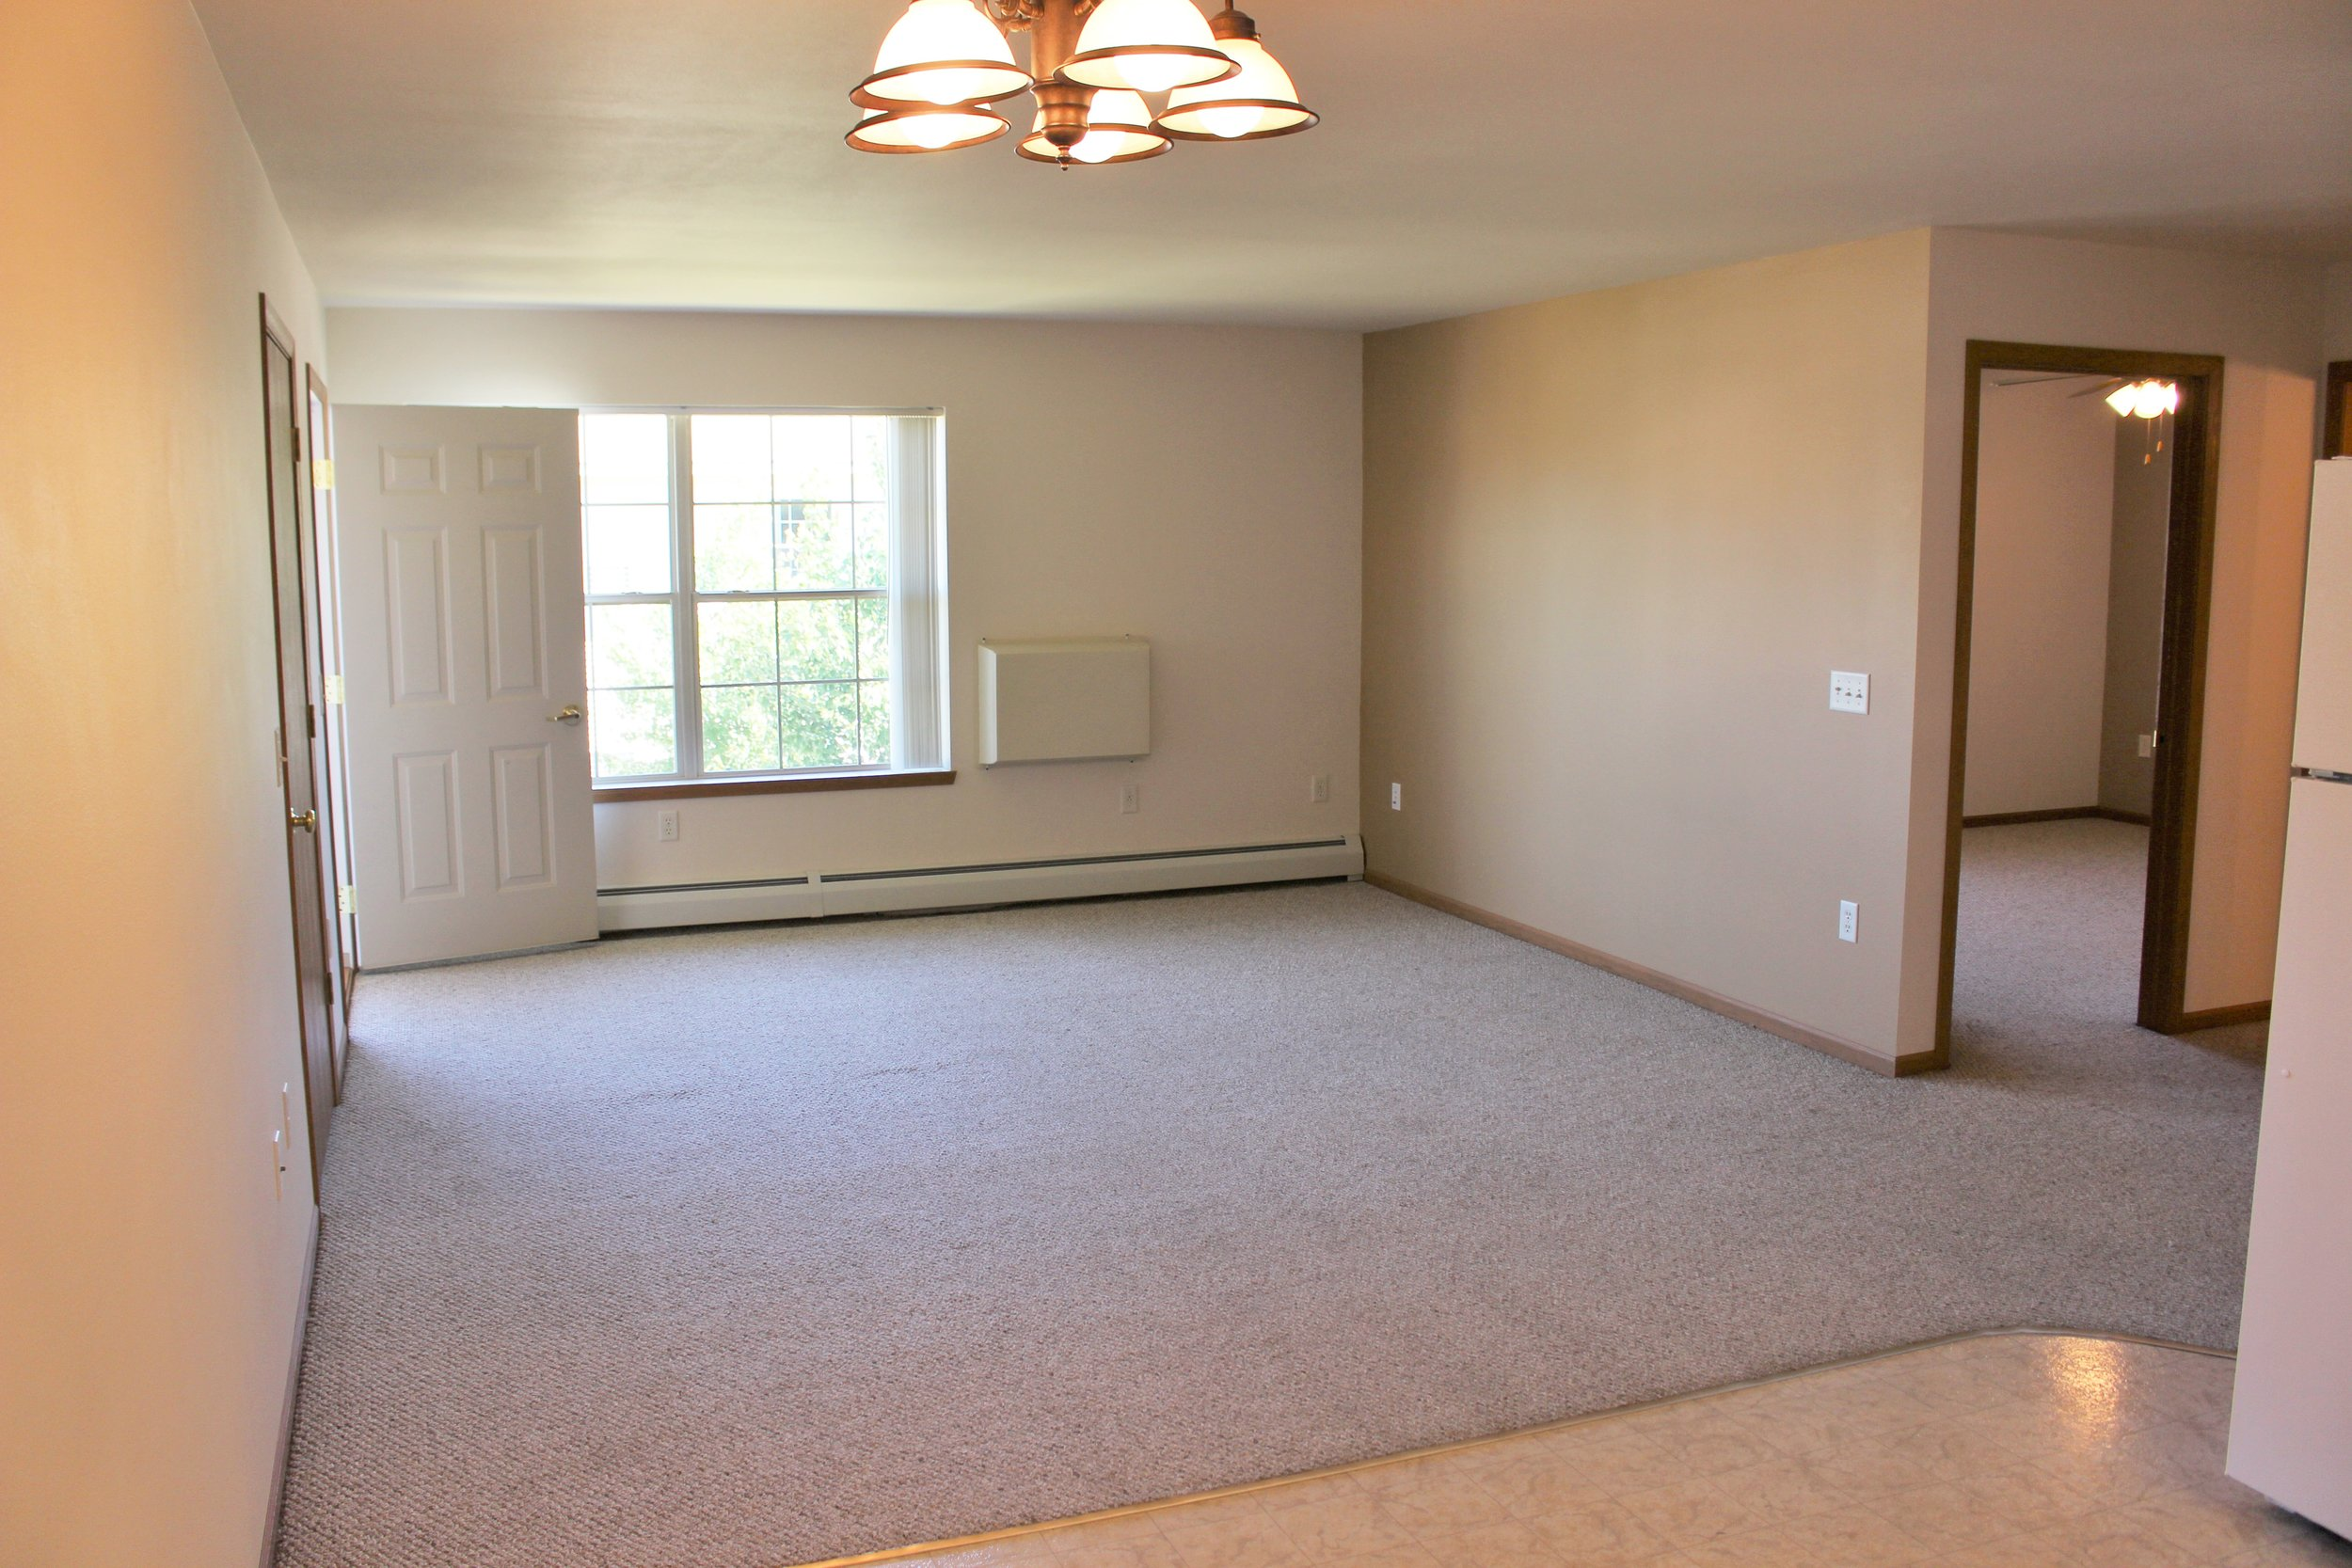 Undecorated Living Room2017.JPG